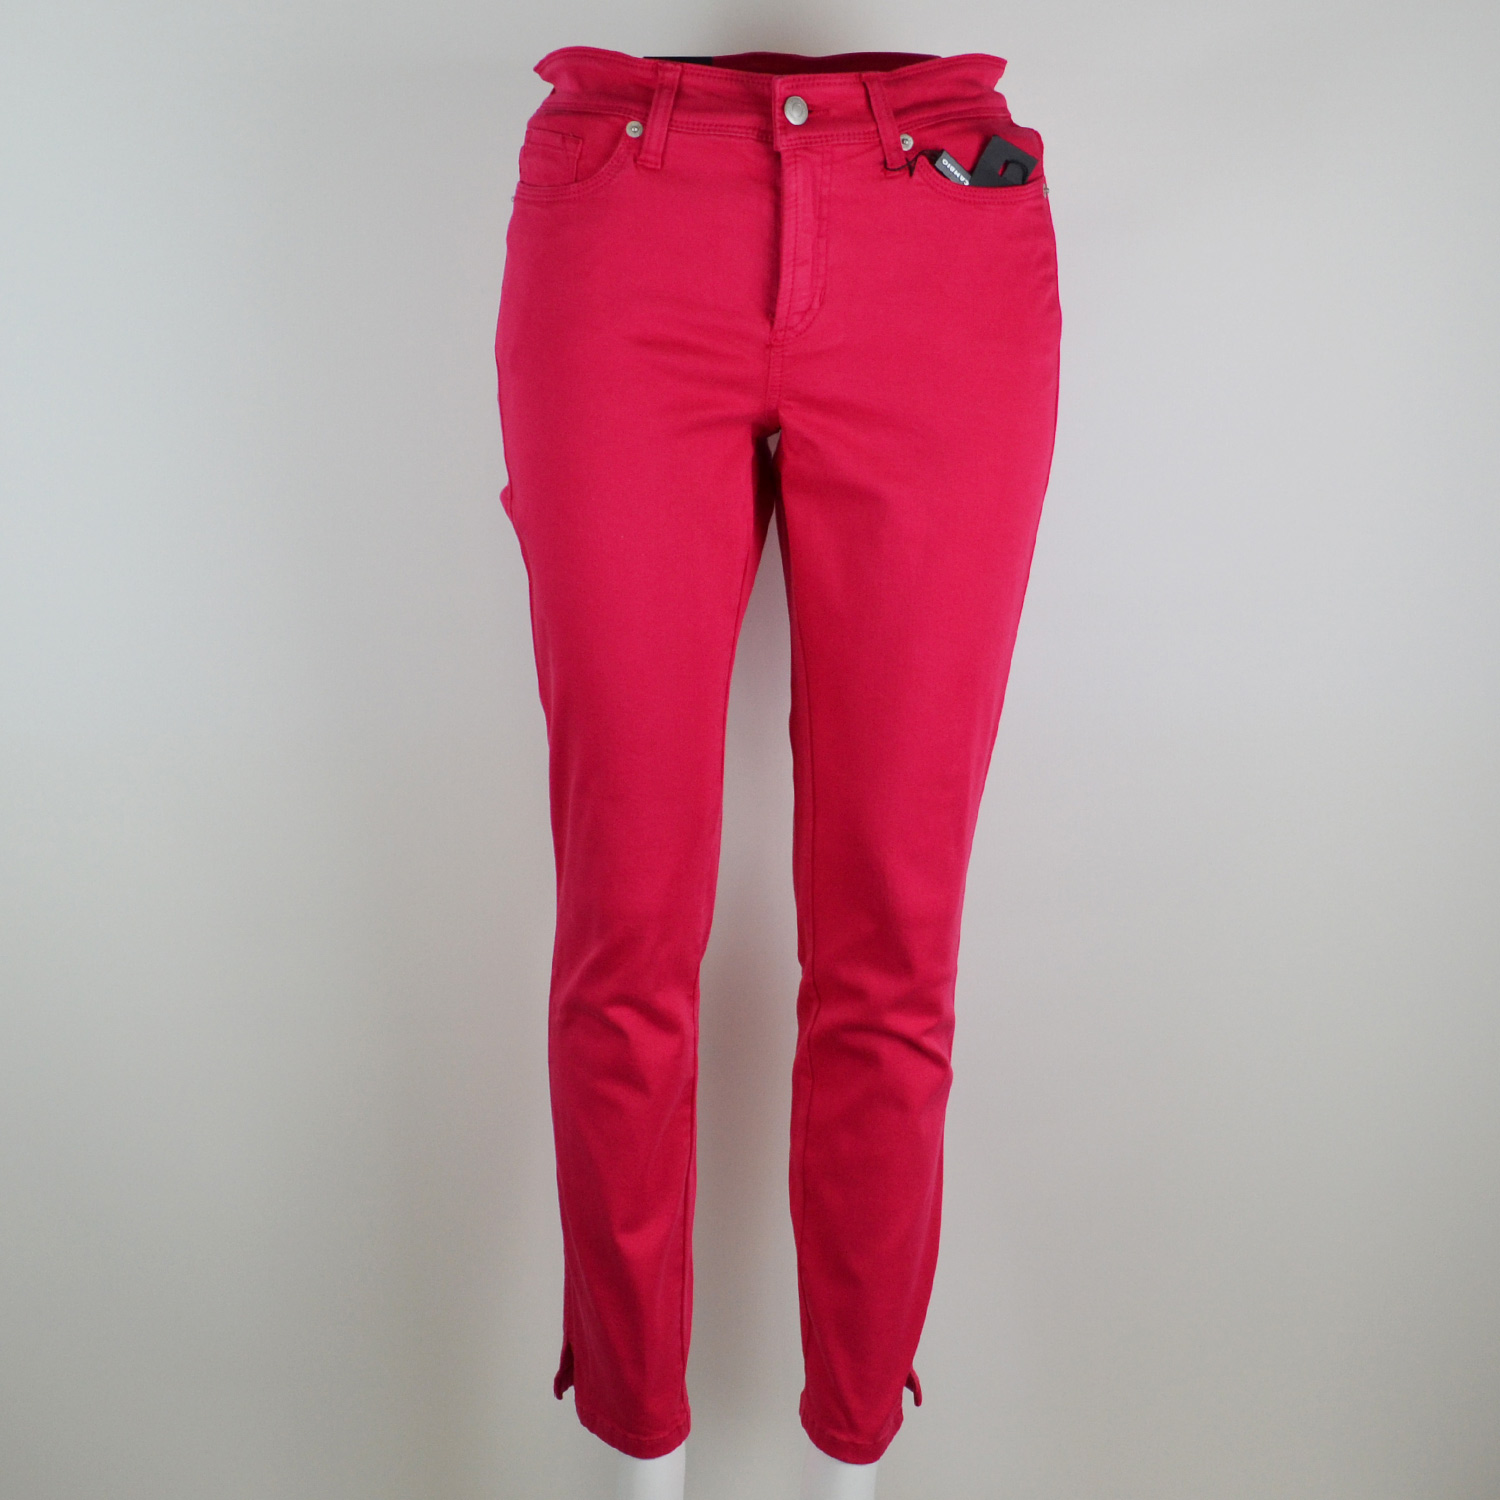 CAMBIO Damen Jeans Hose Piper Short in Rot 9521 003856 280